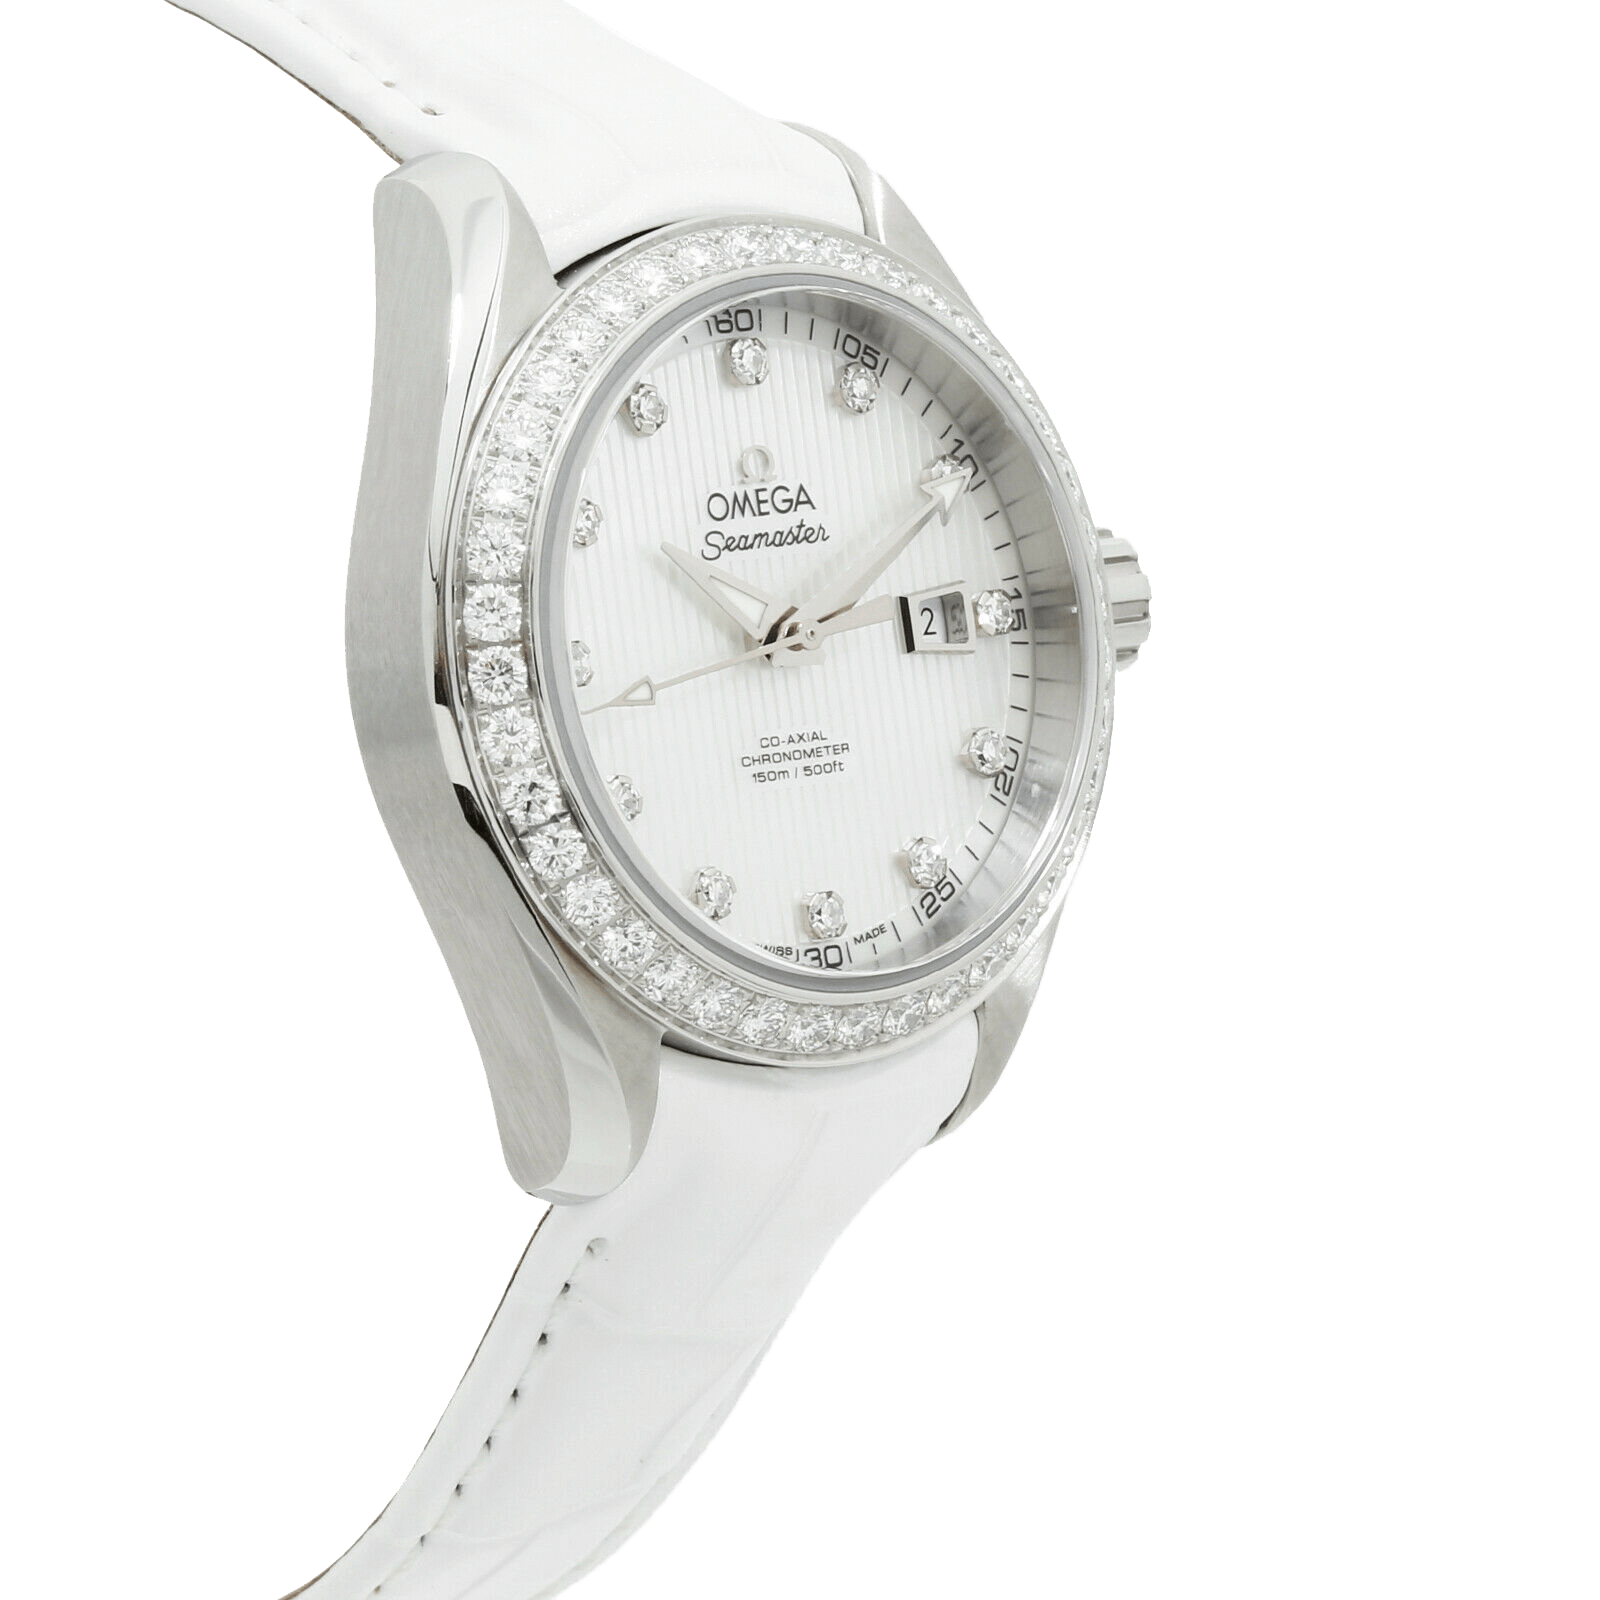 A sporty dress Aqua Terra Wearer watch